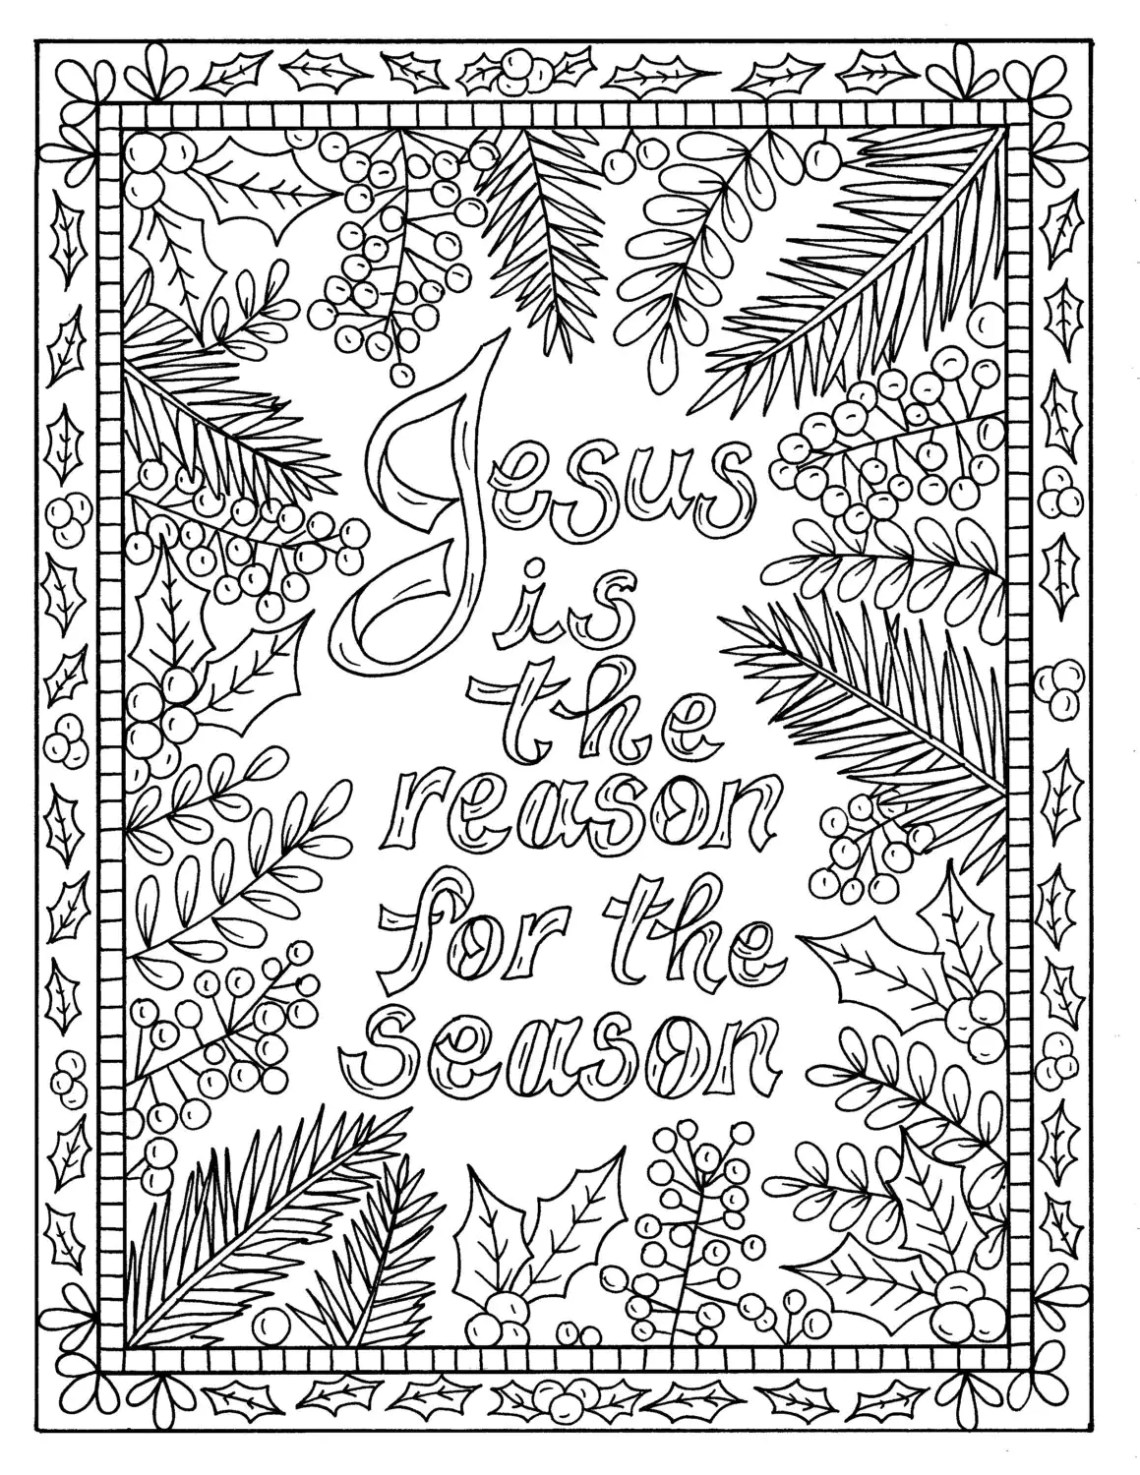 5 Christian Coloring Pages for Christmas Color Book Digital   christmas coloring pages for adults